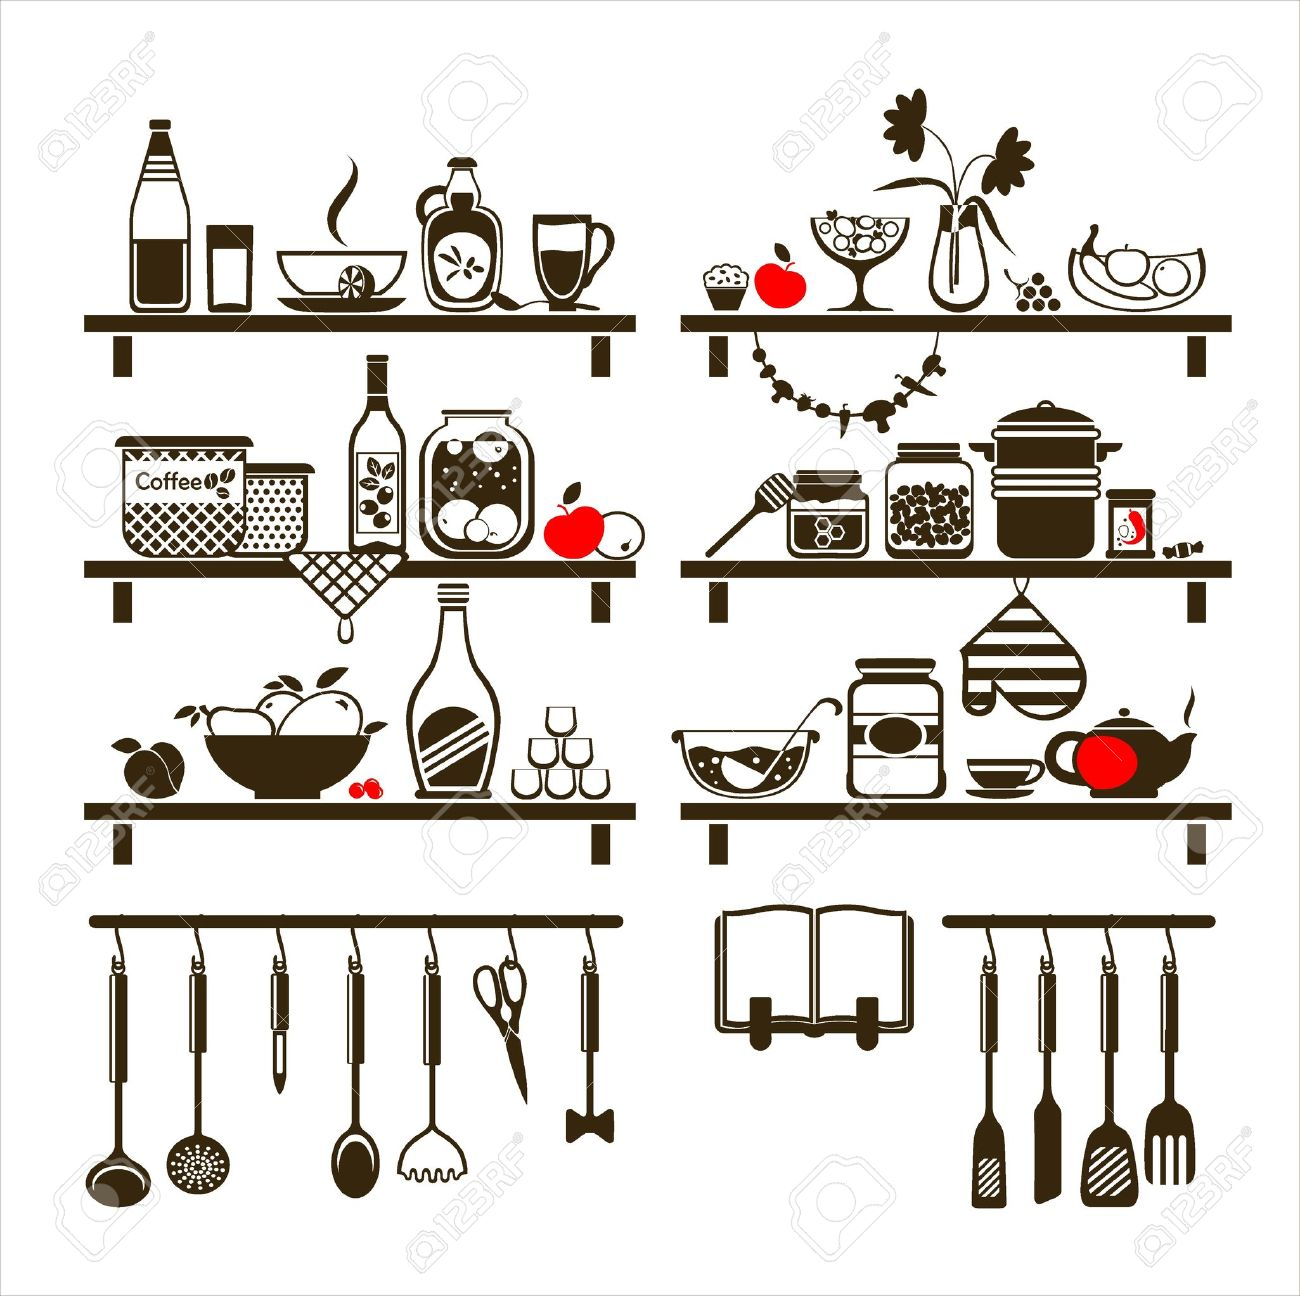 food and drinks icons set, drawn up as kitchen shelves Stock Vector - 18730956